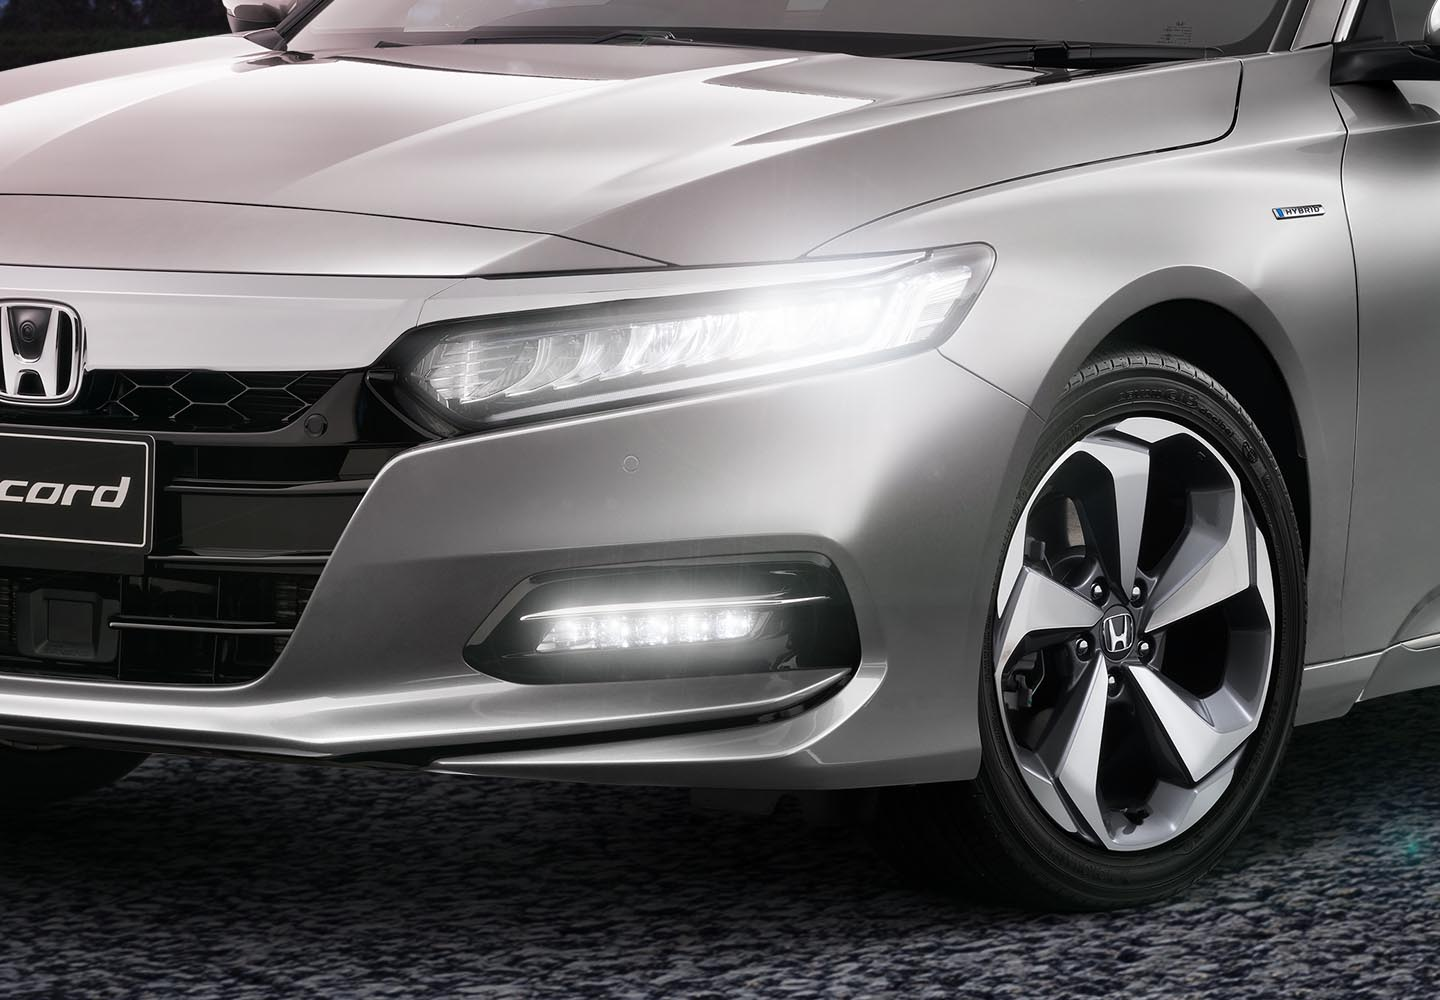 Accord High-Beam Support System (HSS)